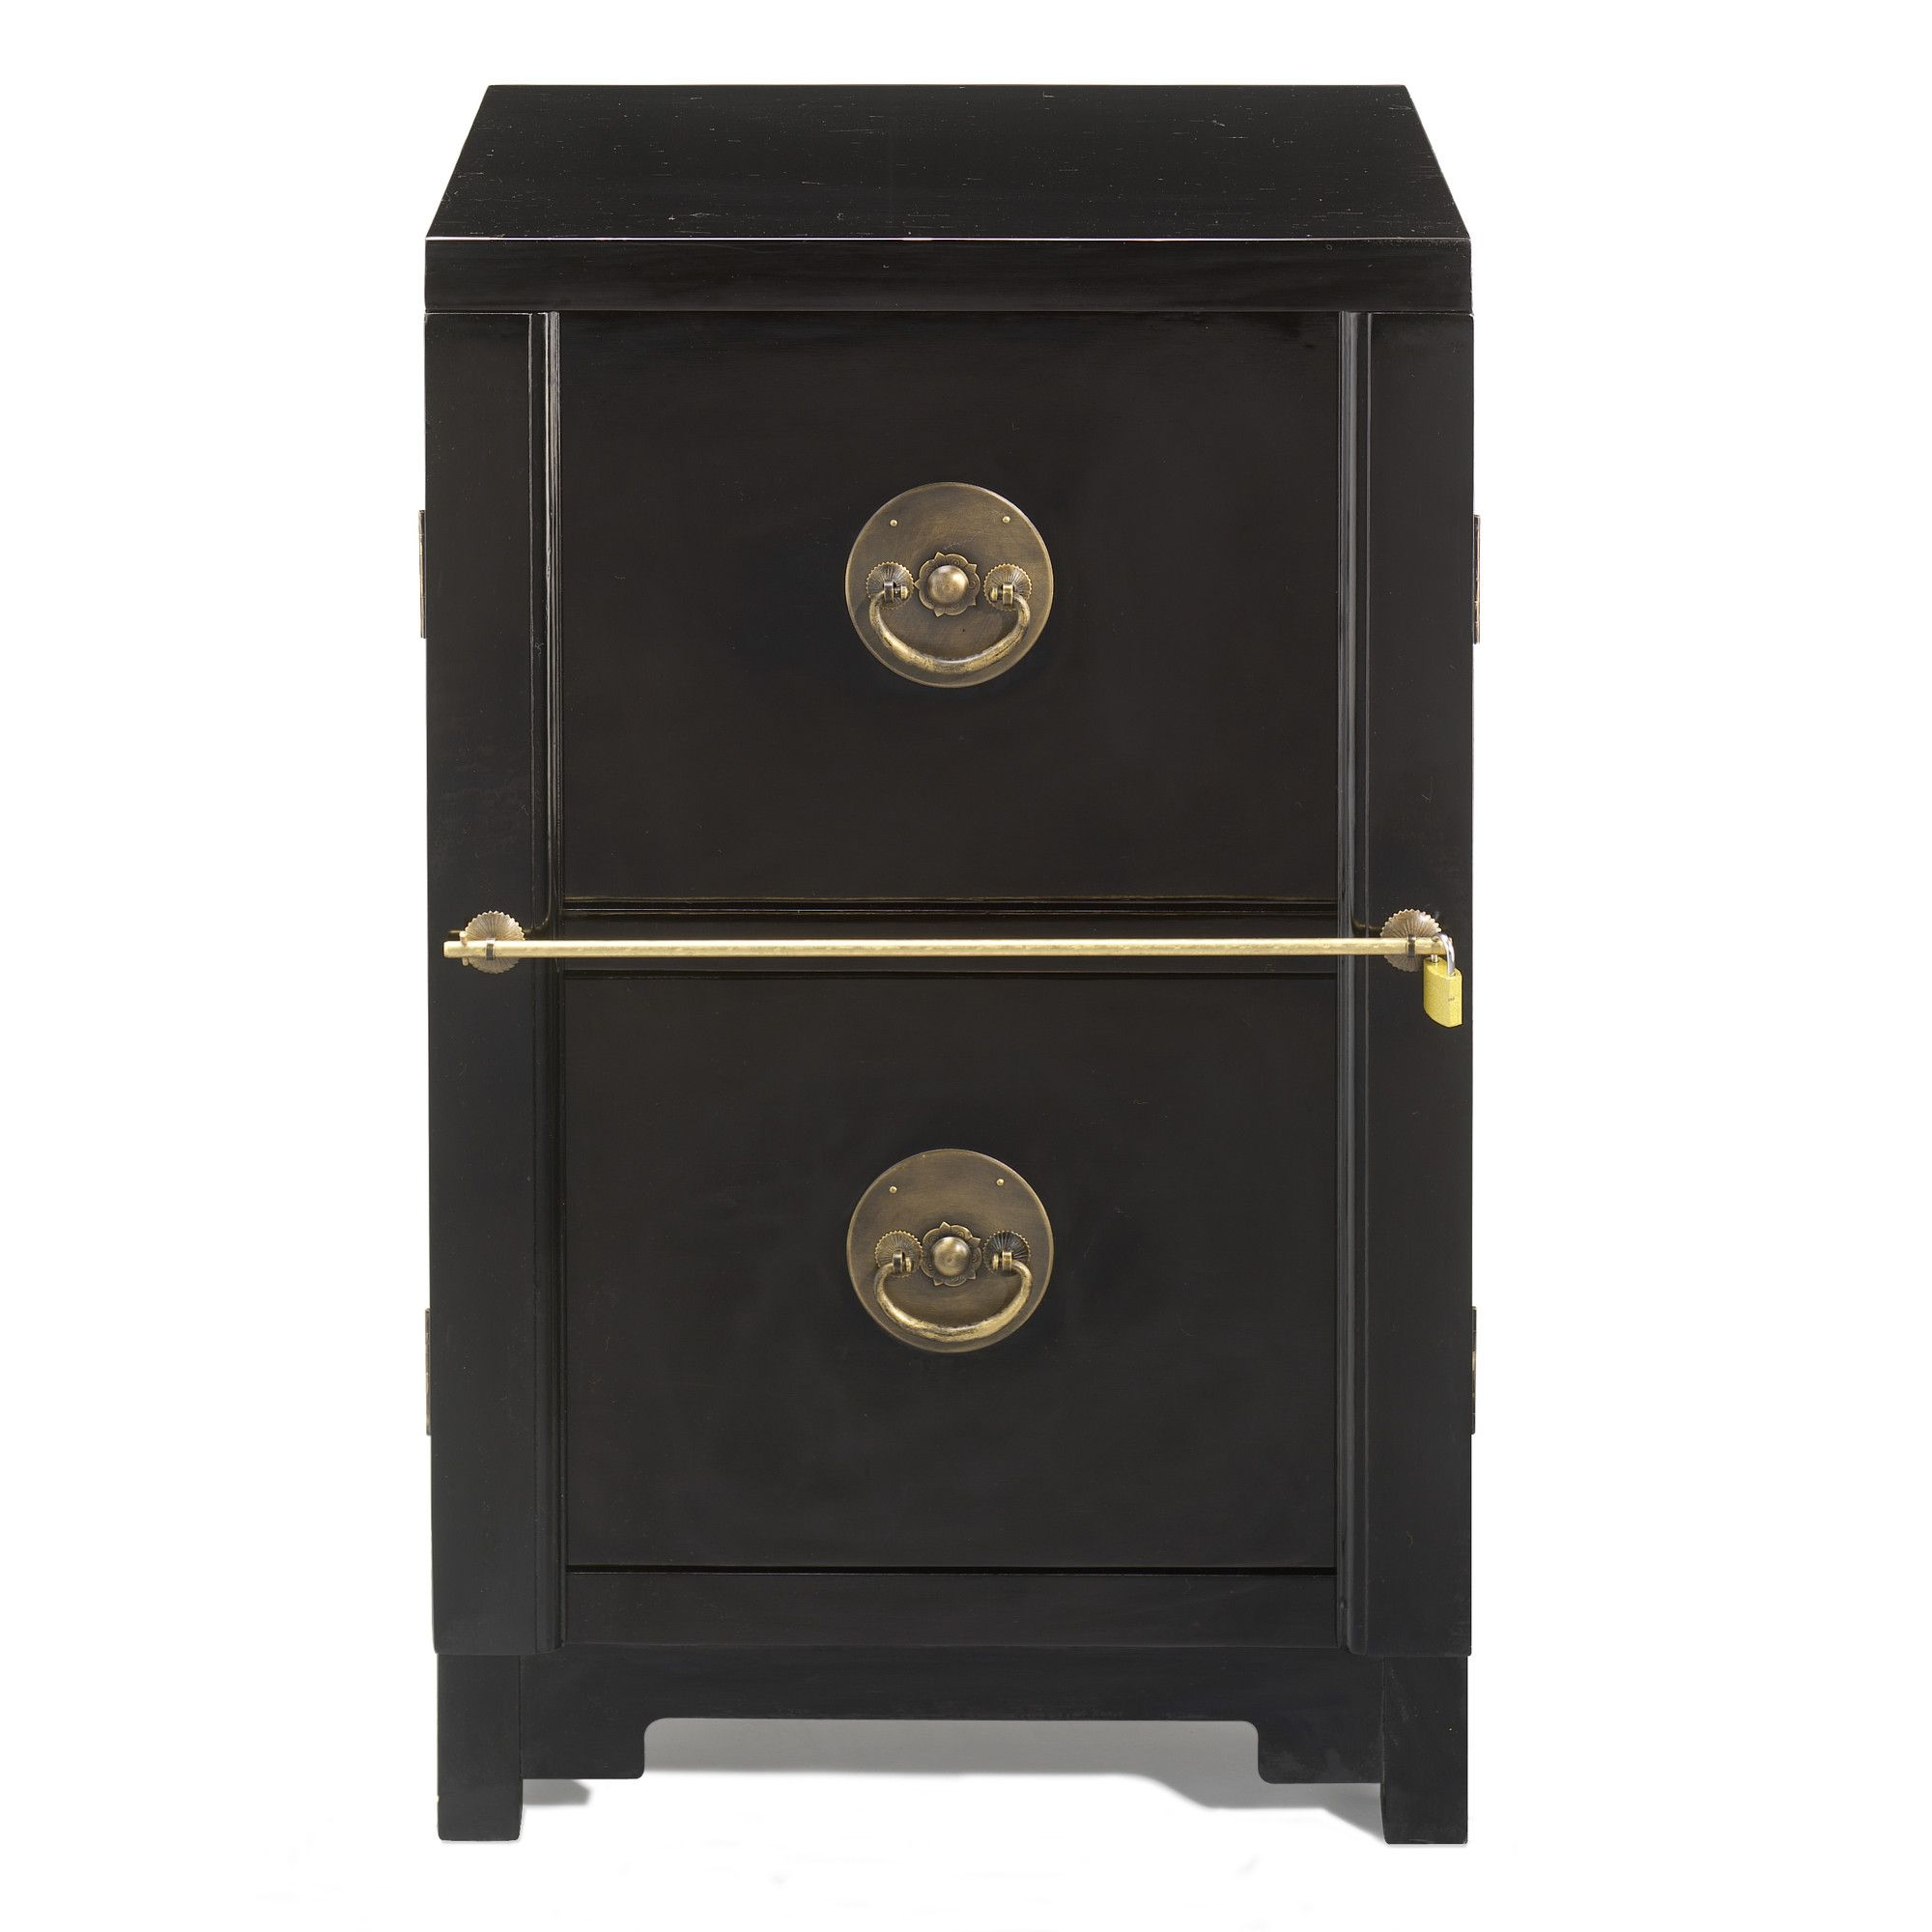 Shimu Chinese Classical Two Drawer Filing Cabinet - Black Lacquer at Tesco Direct